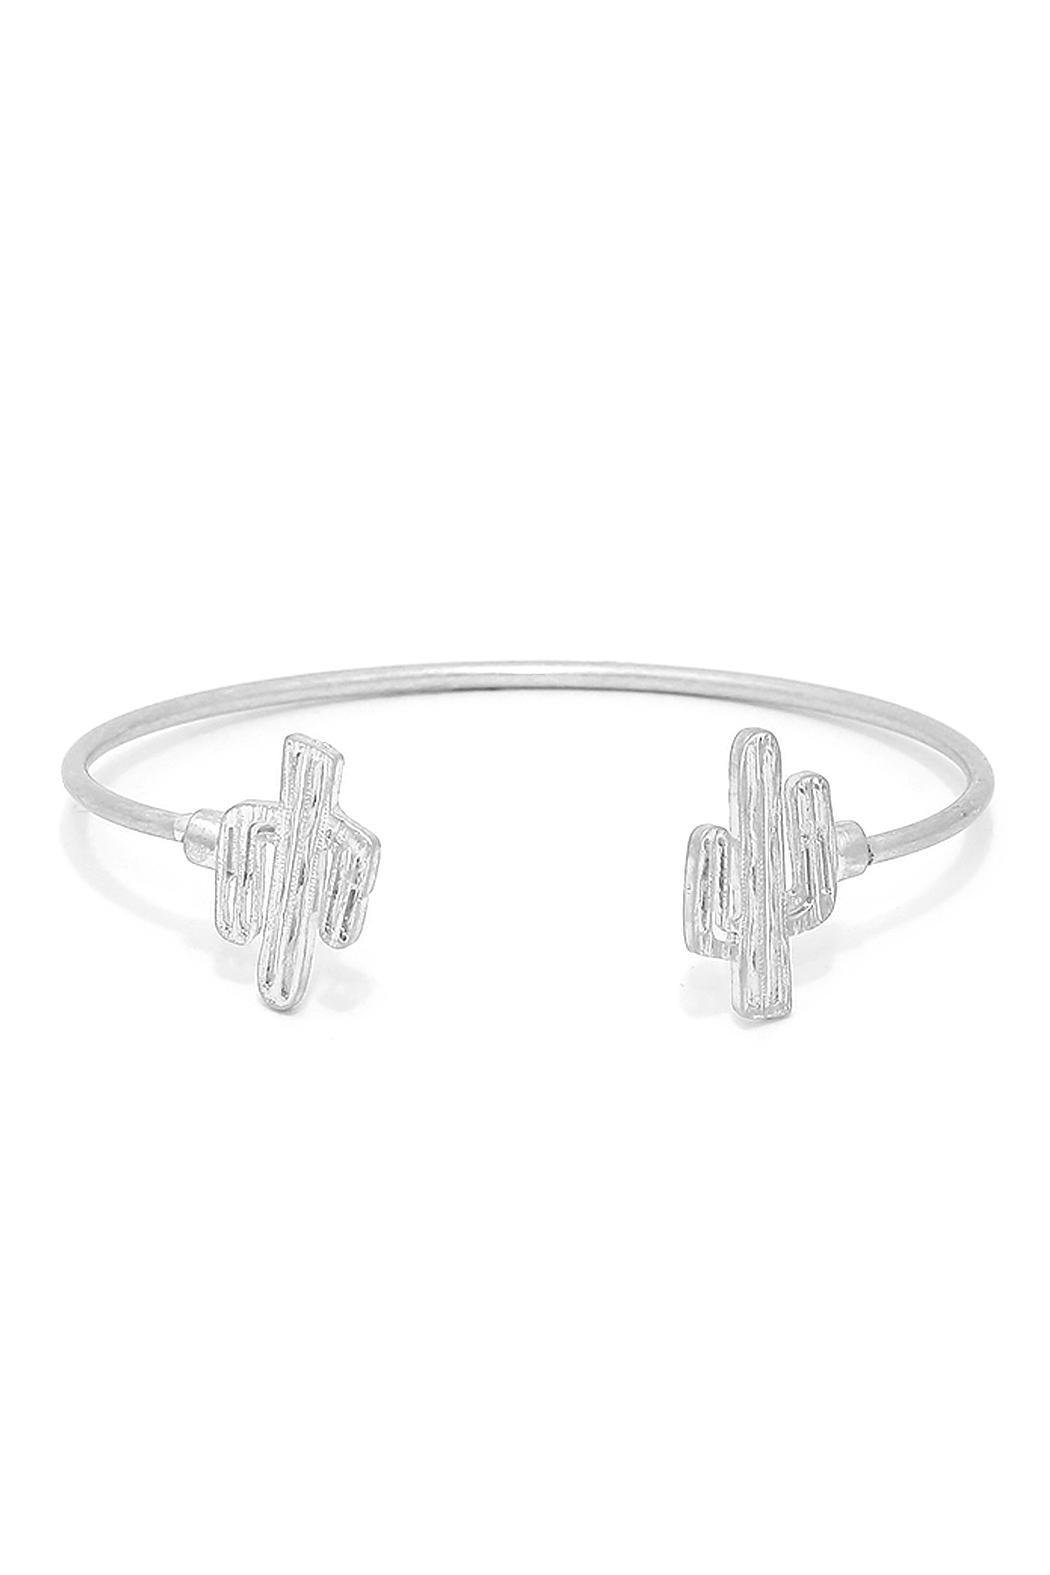 Wild Lilies Jewelry  Cactus Cuff Bracelet - Front Cropped Image